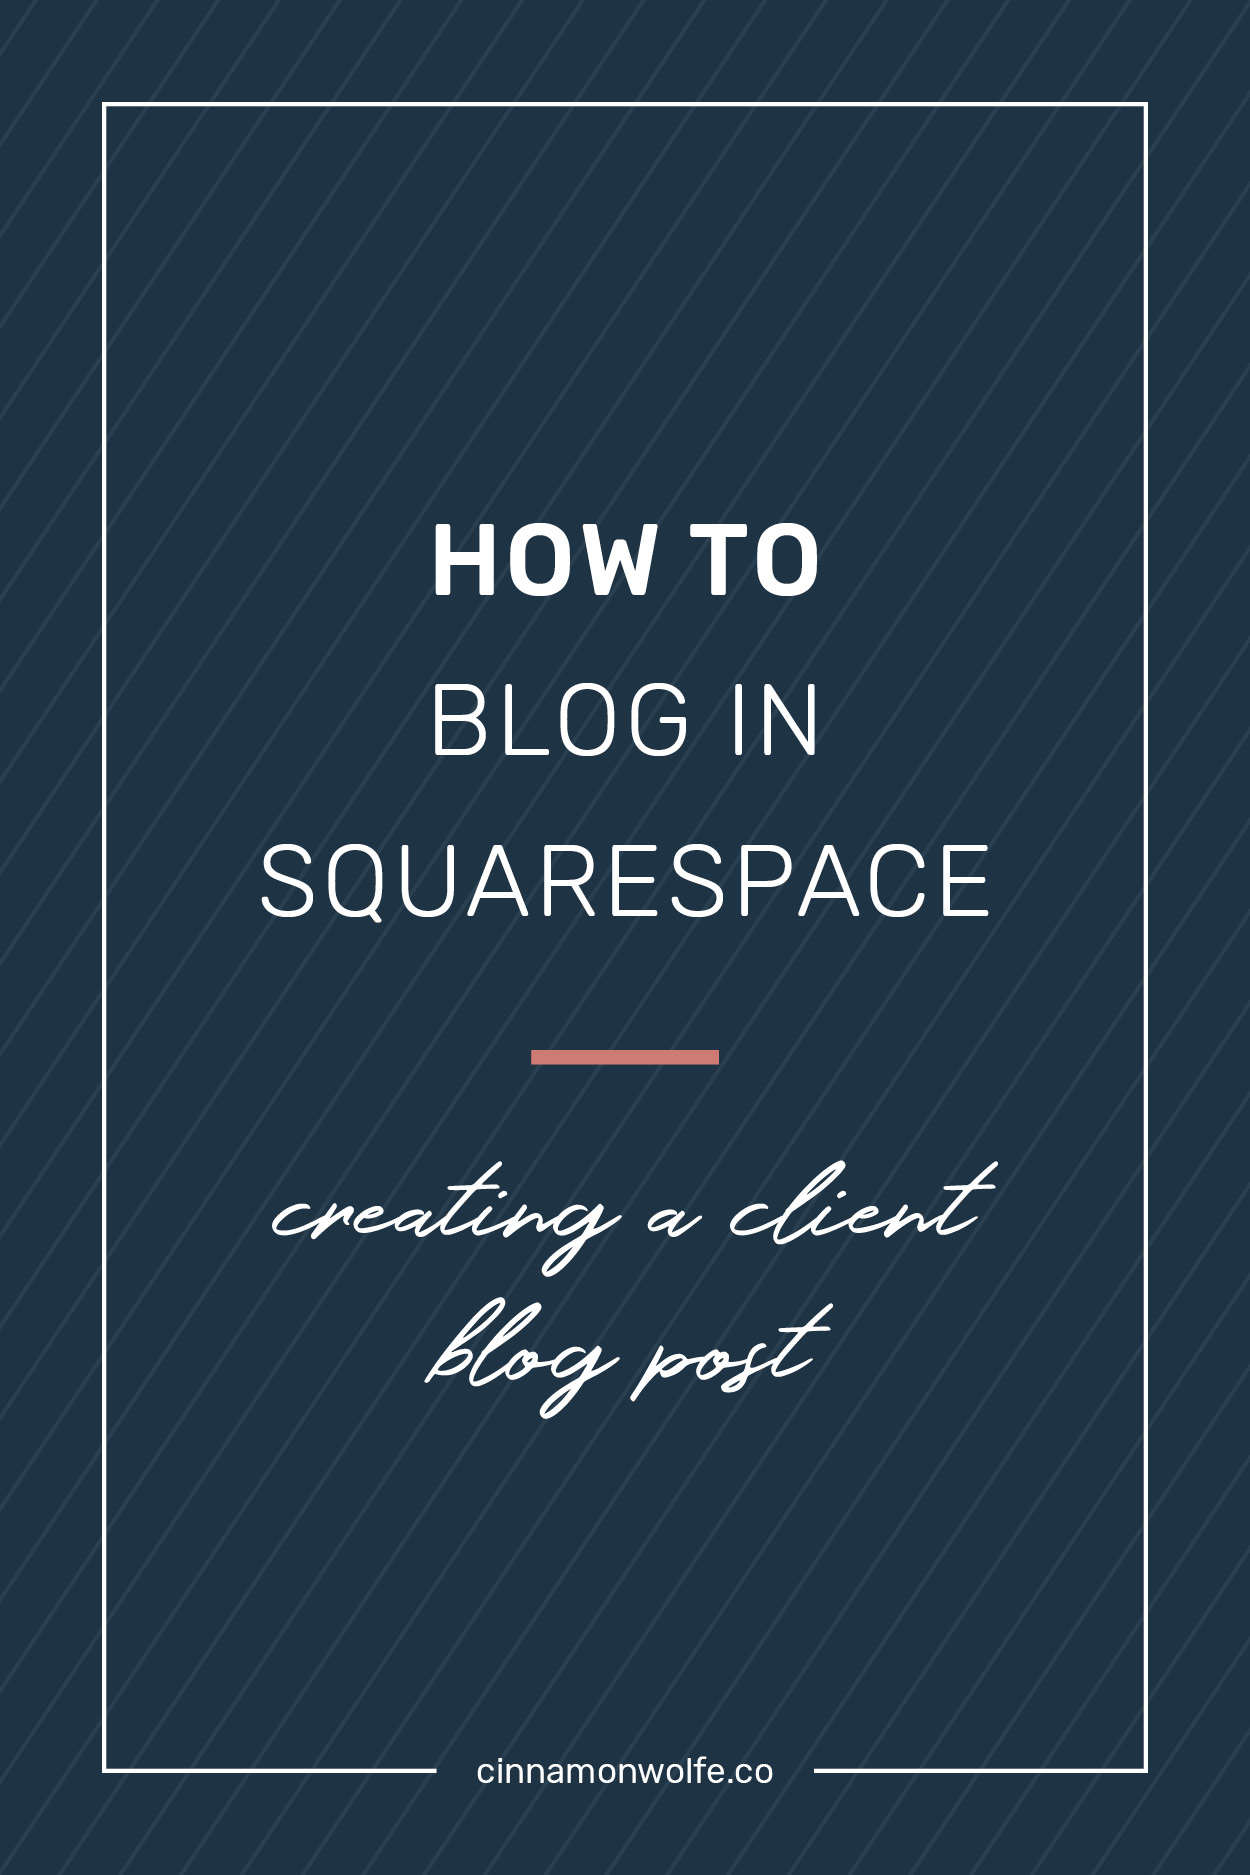 How to create a blog post in squarespace